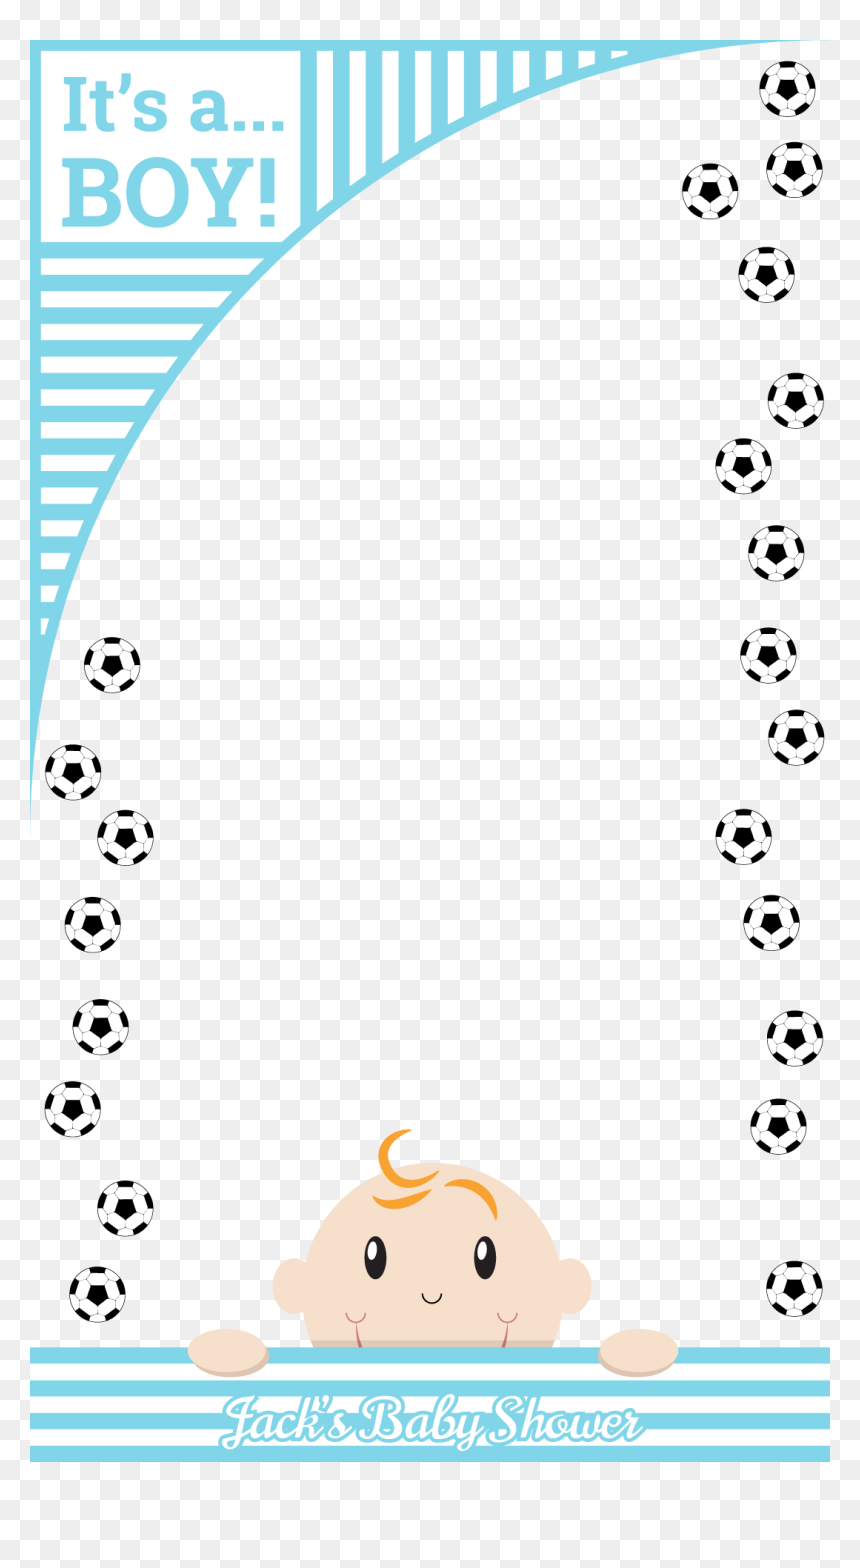 Baby Shower Snapchat Filter Ready Hd Png Download Vhv